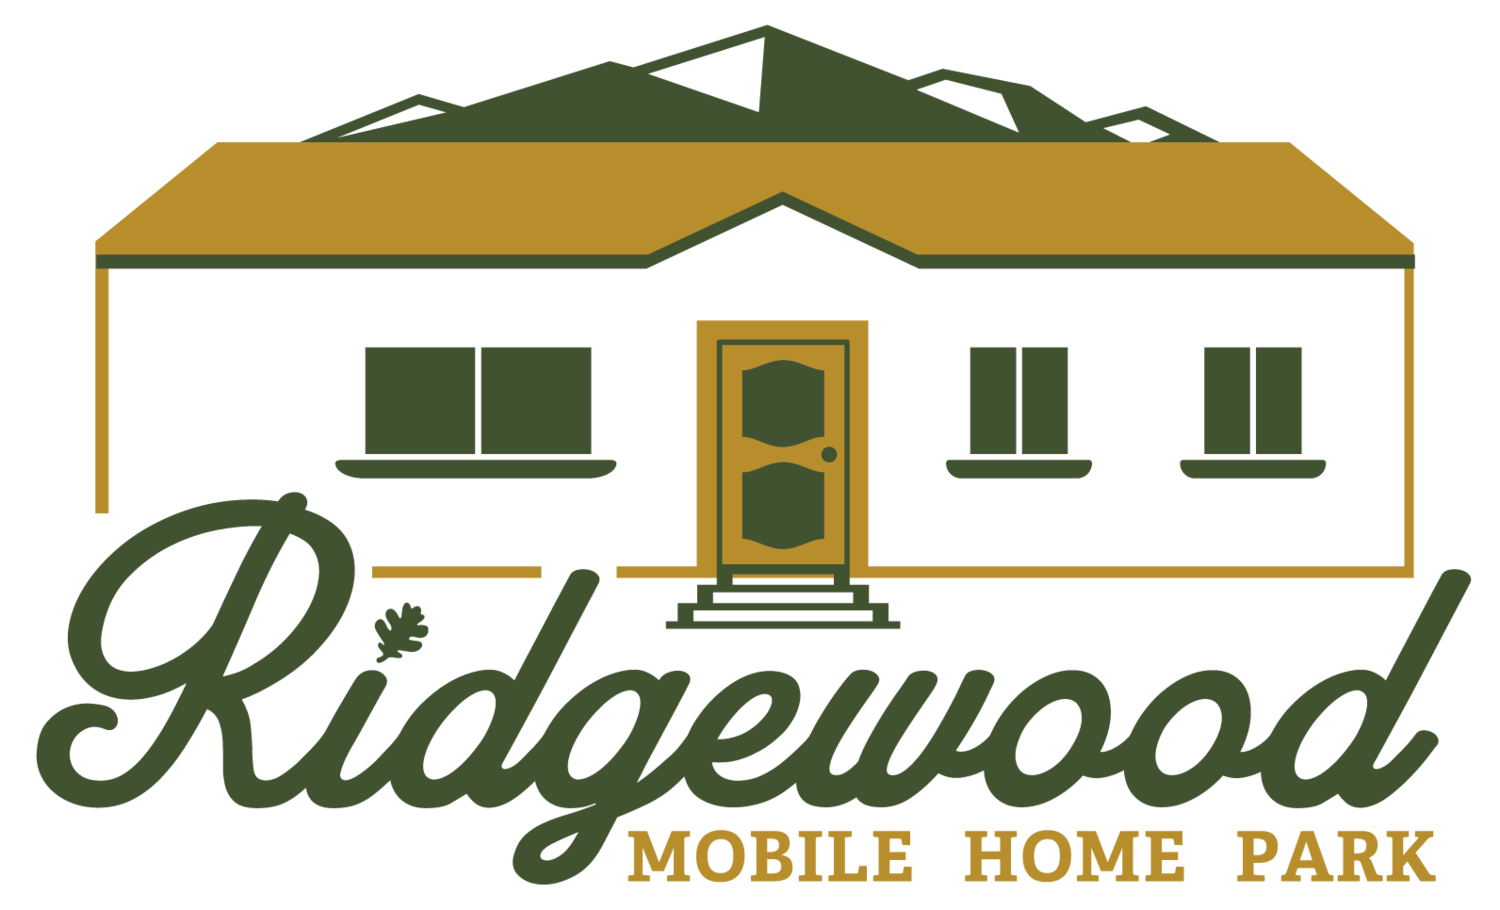 Ridgewood Mobile Home Park